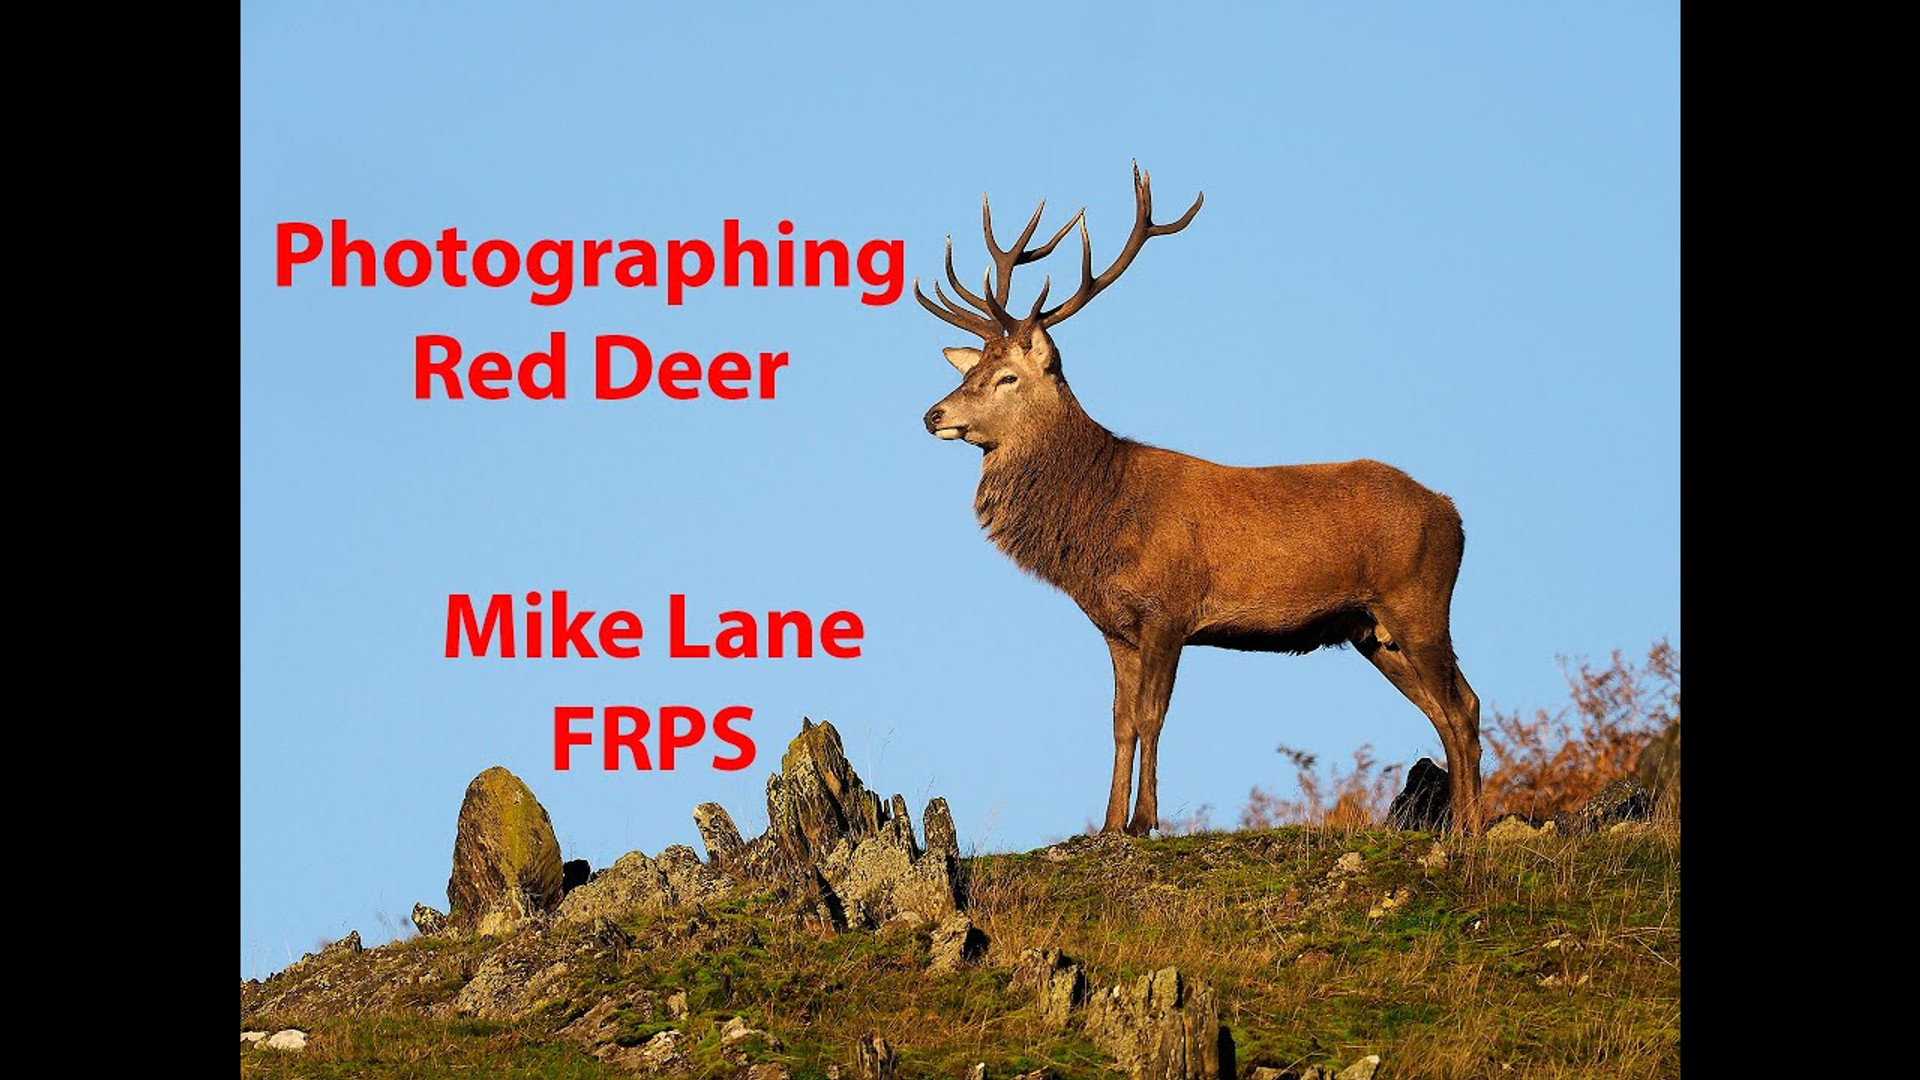 Photographing Red Deer